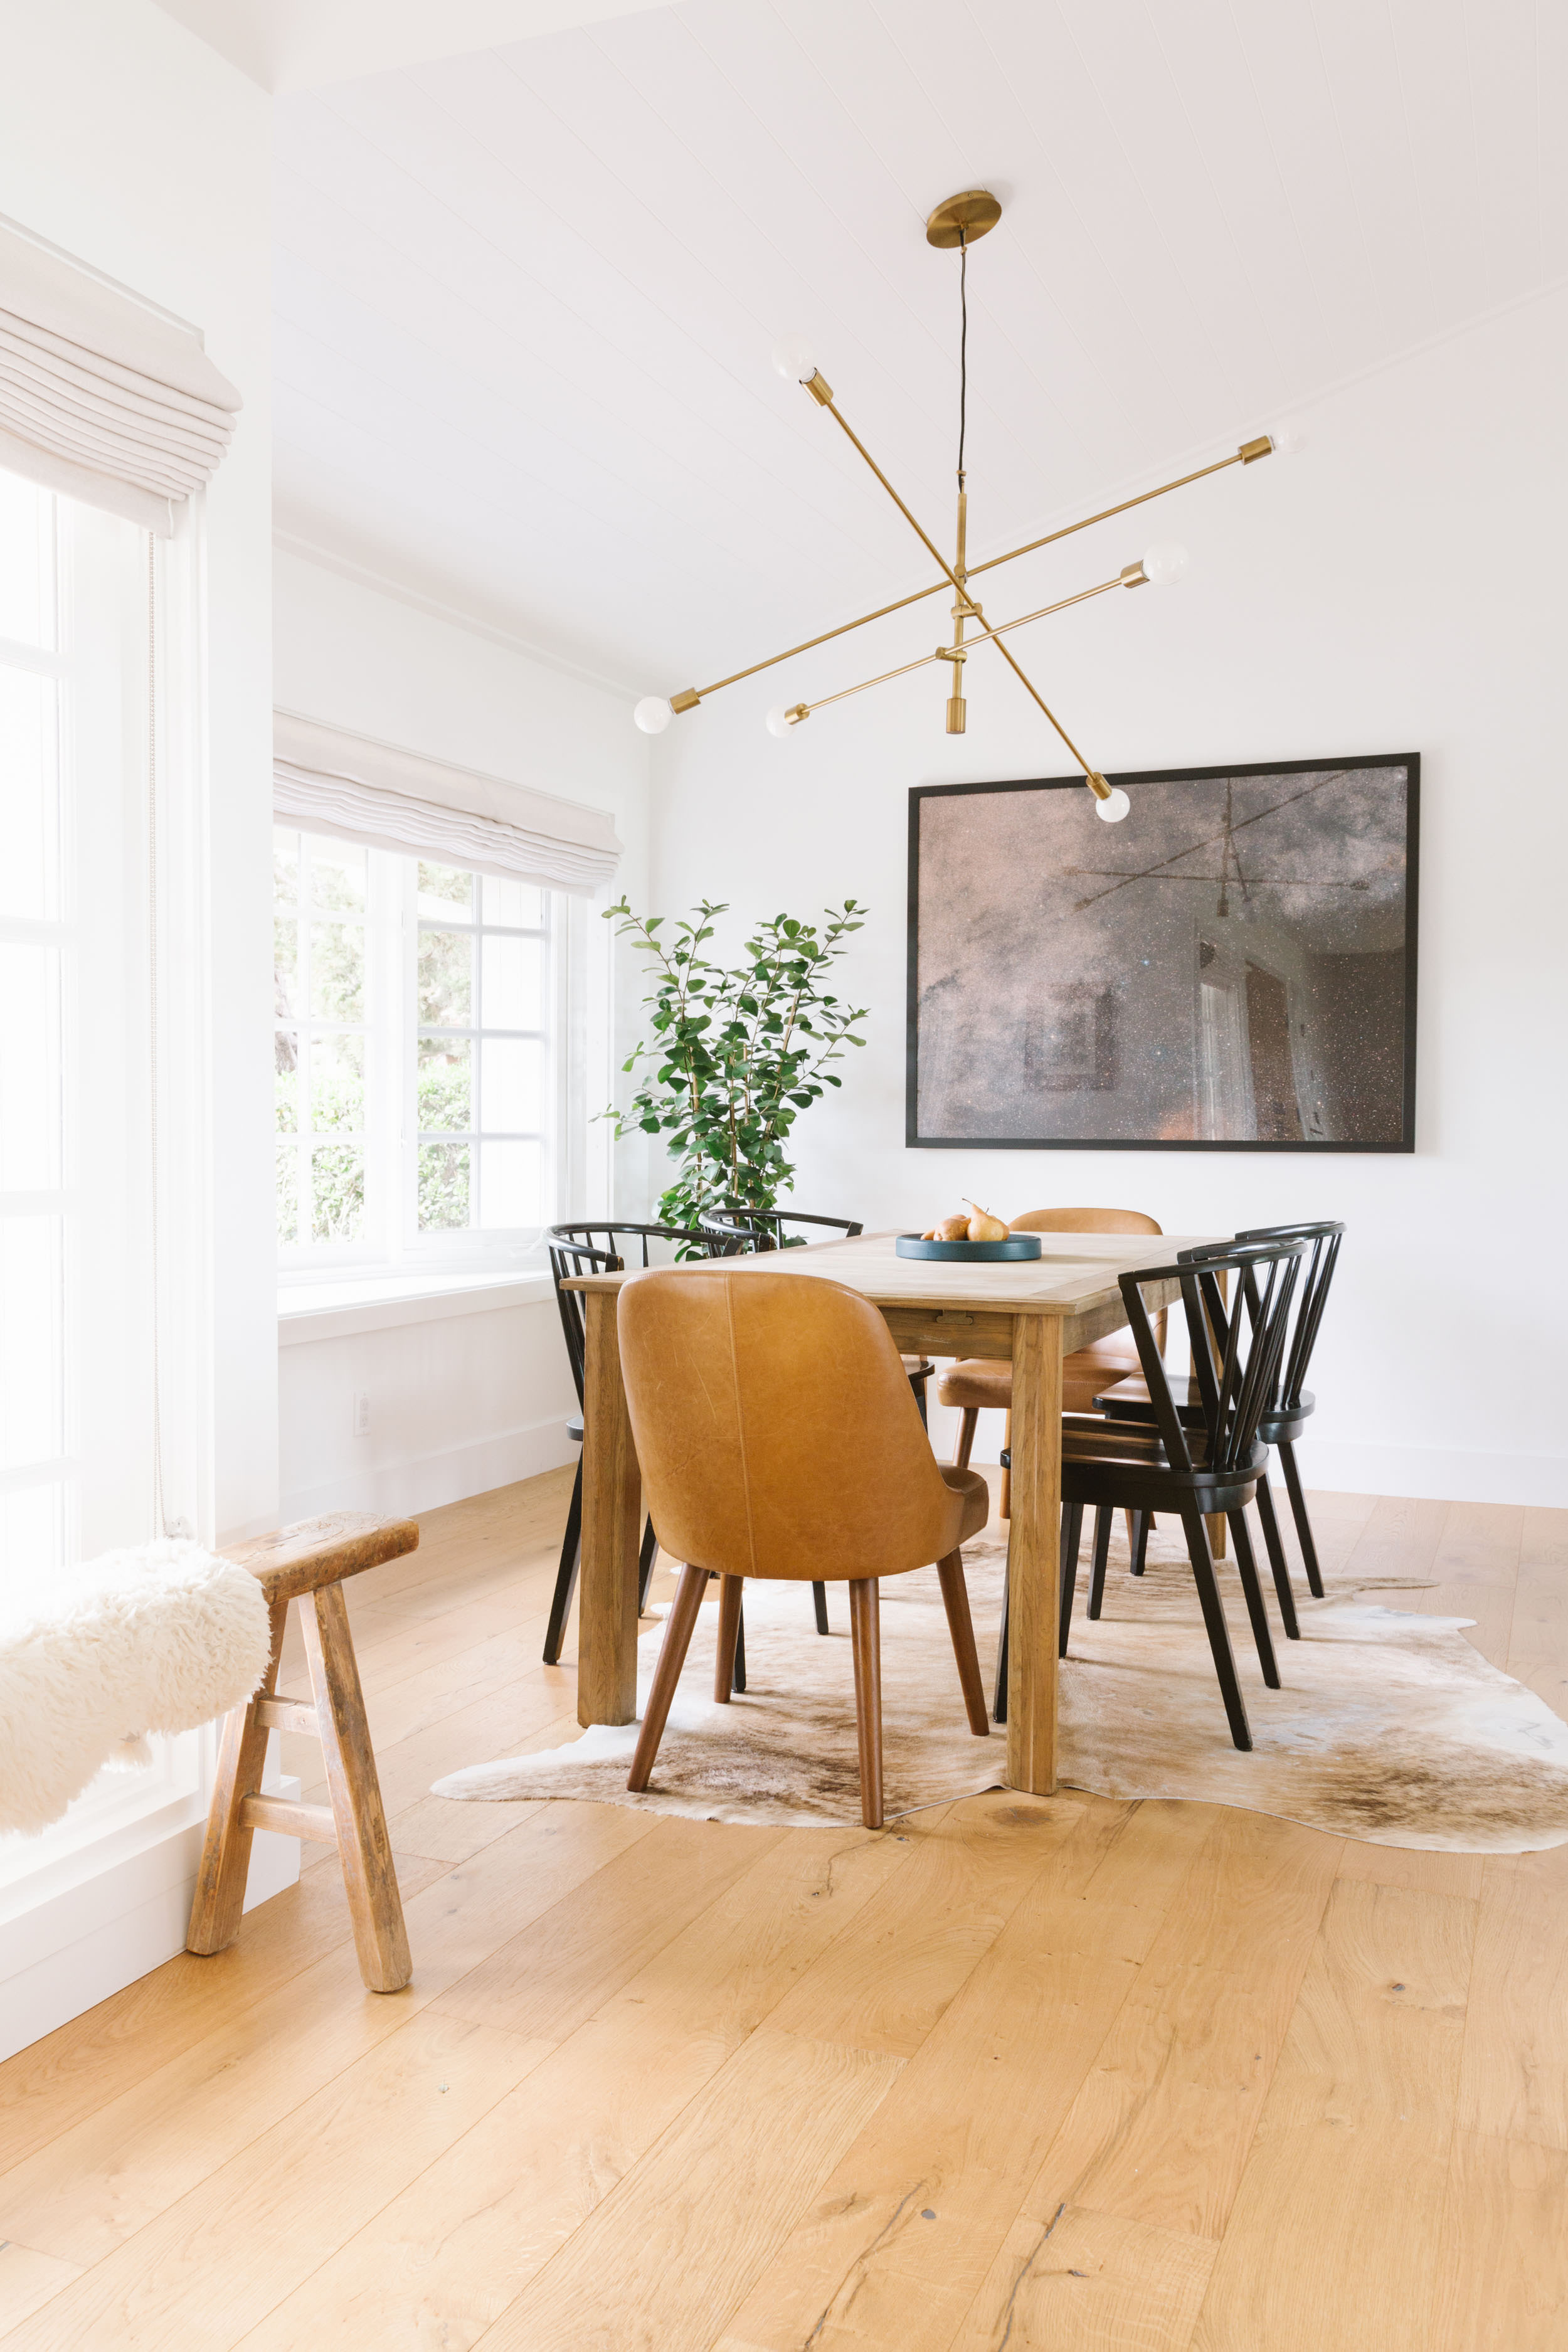 Bright-Minimal-Dining-Space-Different-Dining-Chairs.jpg